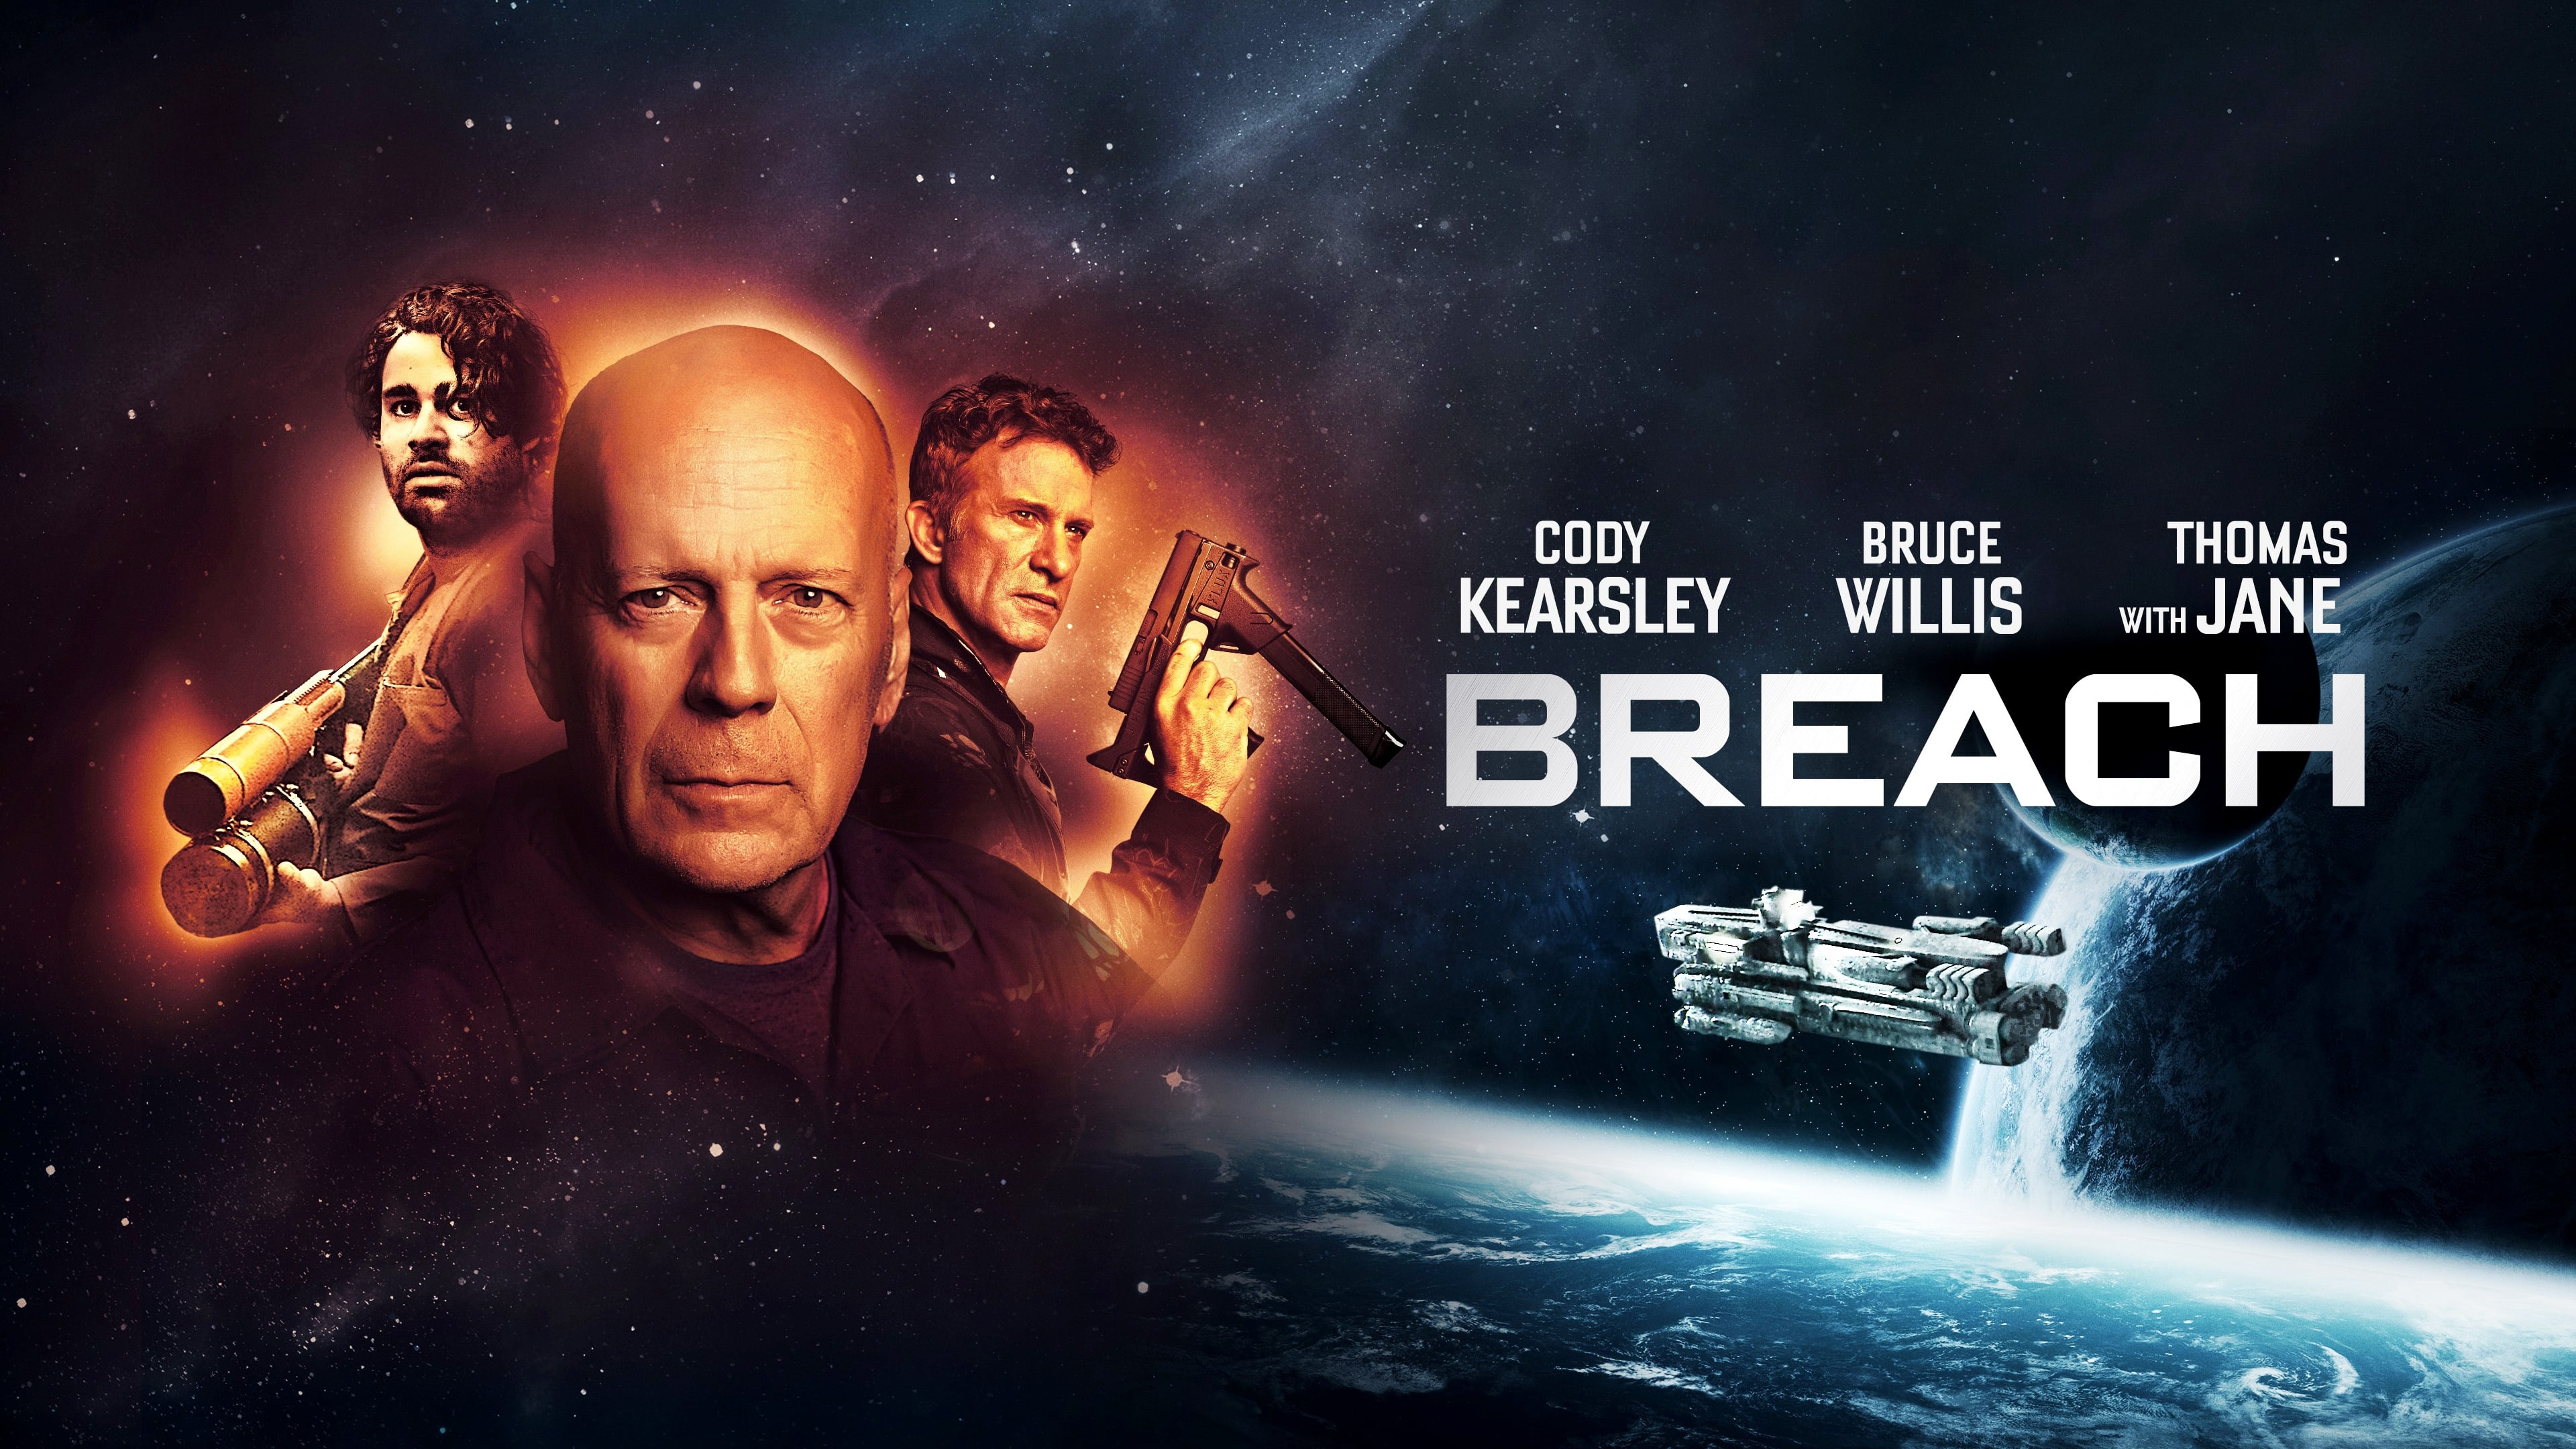 Watch Breach (2020) Full Movie Online Free | Stream Free Movies & TV Shows